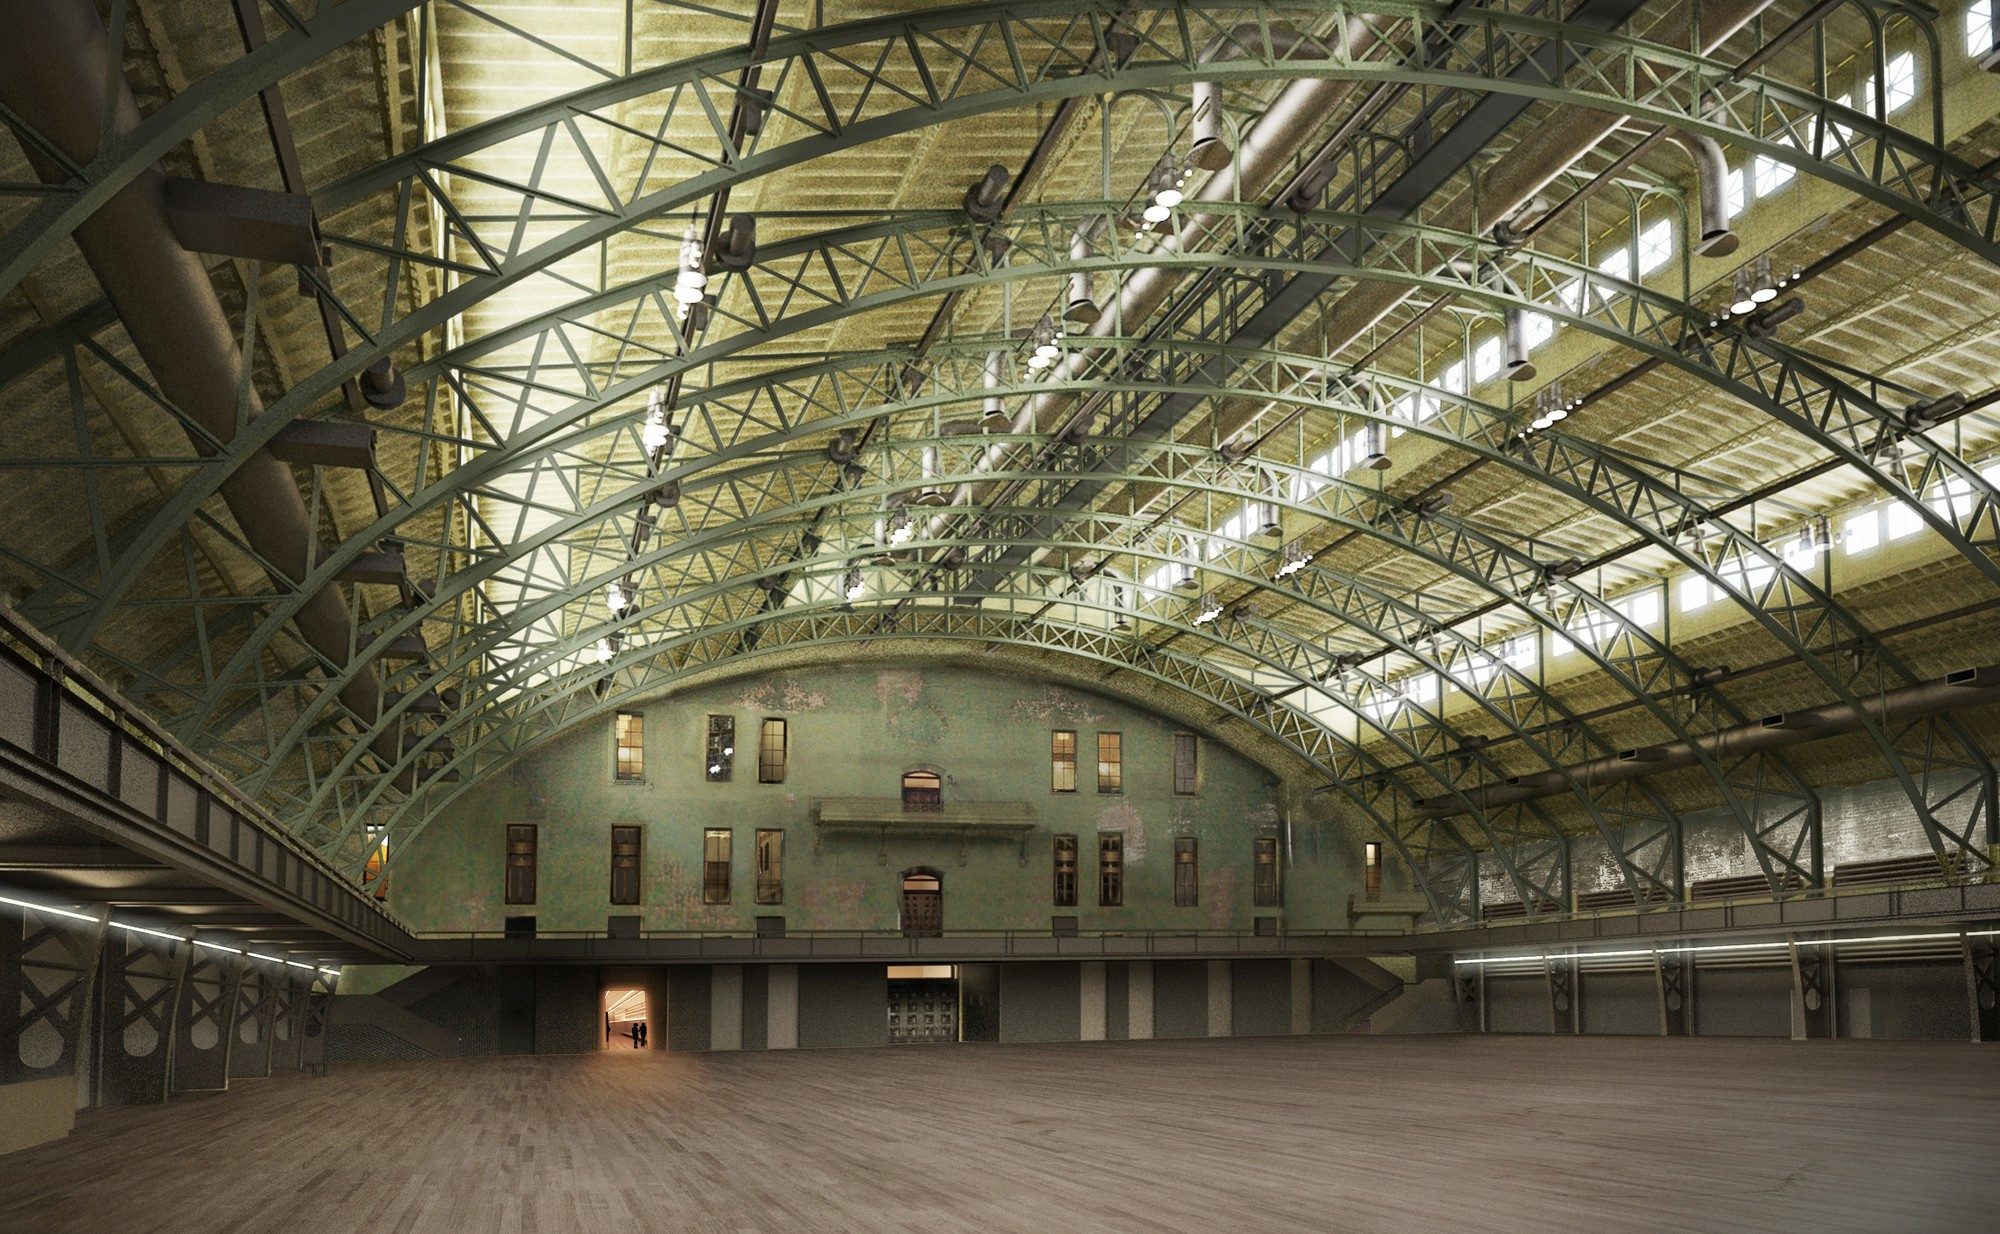 Rafael Viñoly's Structural Experiment at Park Avenue Armory